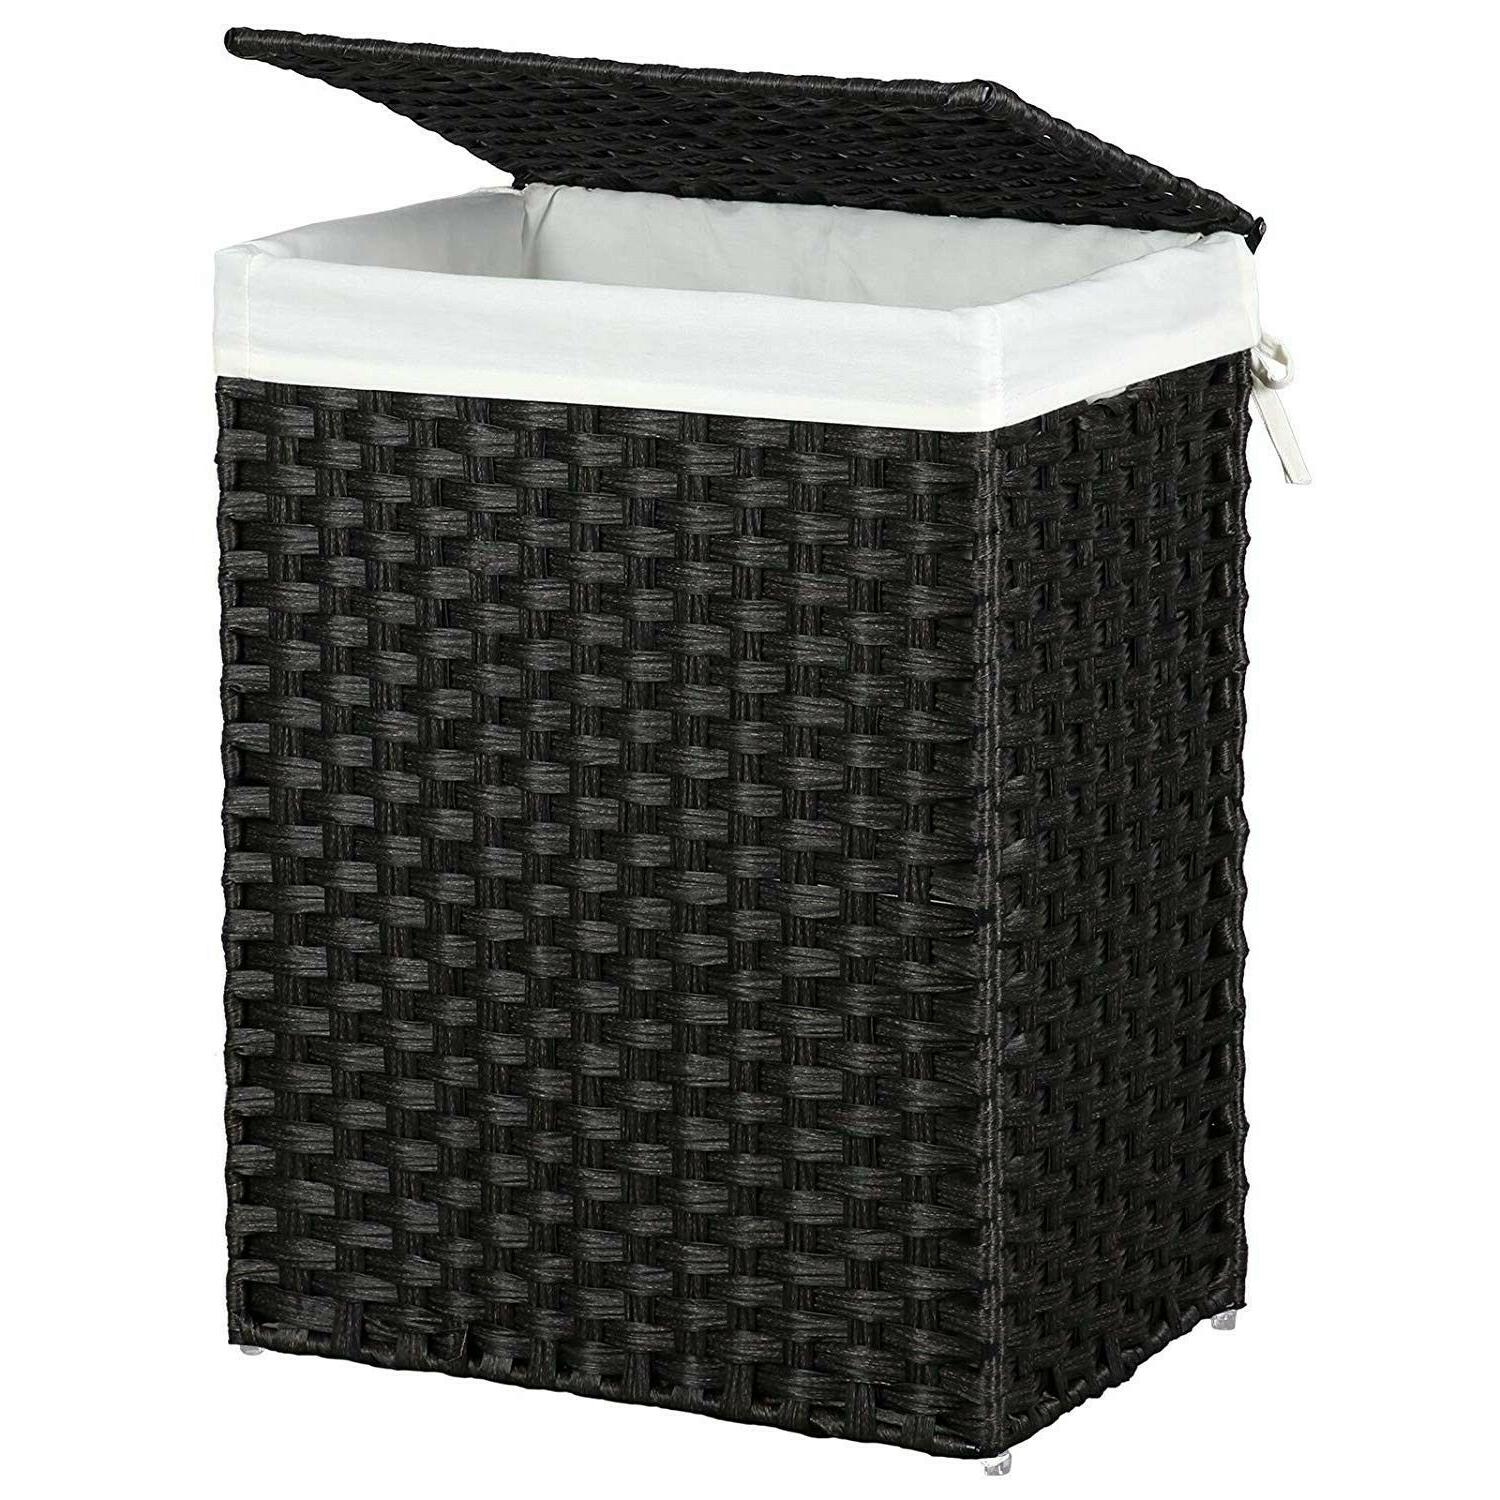 Laundry Basket Handwoven Foldable Hamper Washing Clothes Rat